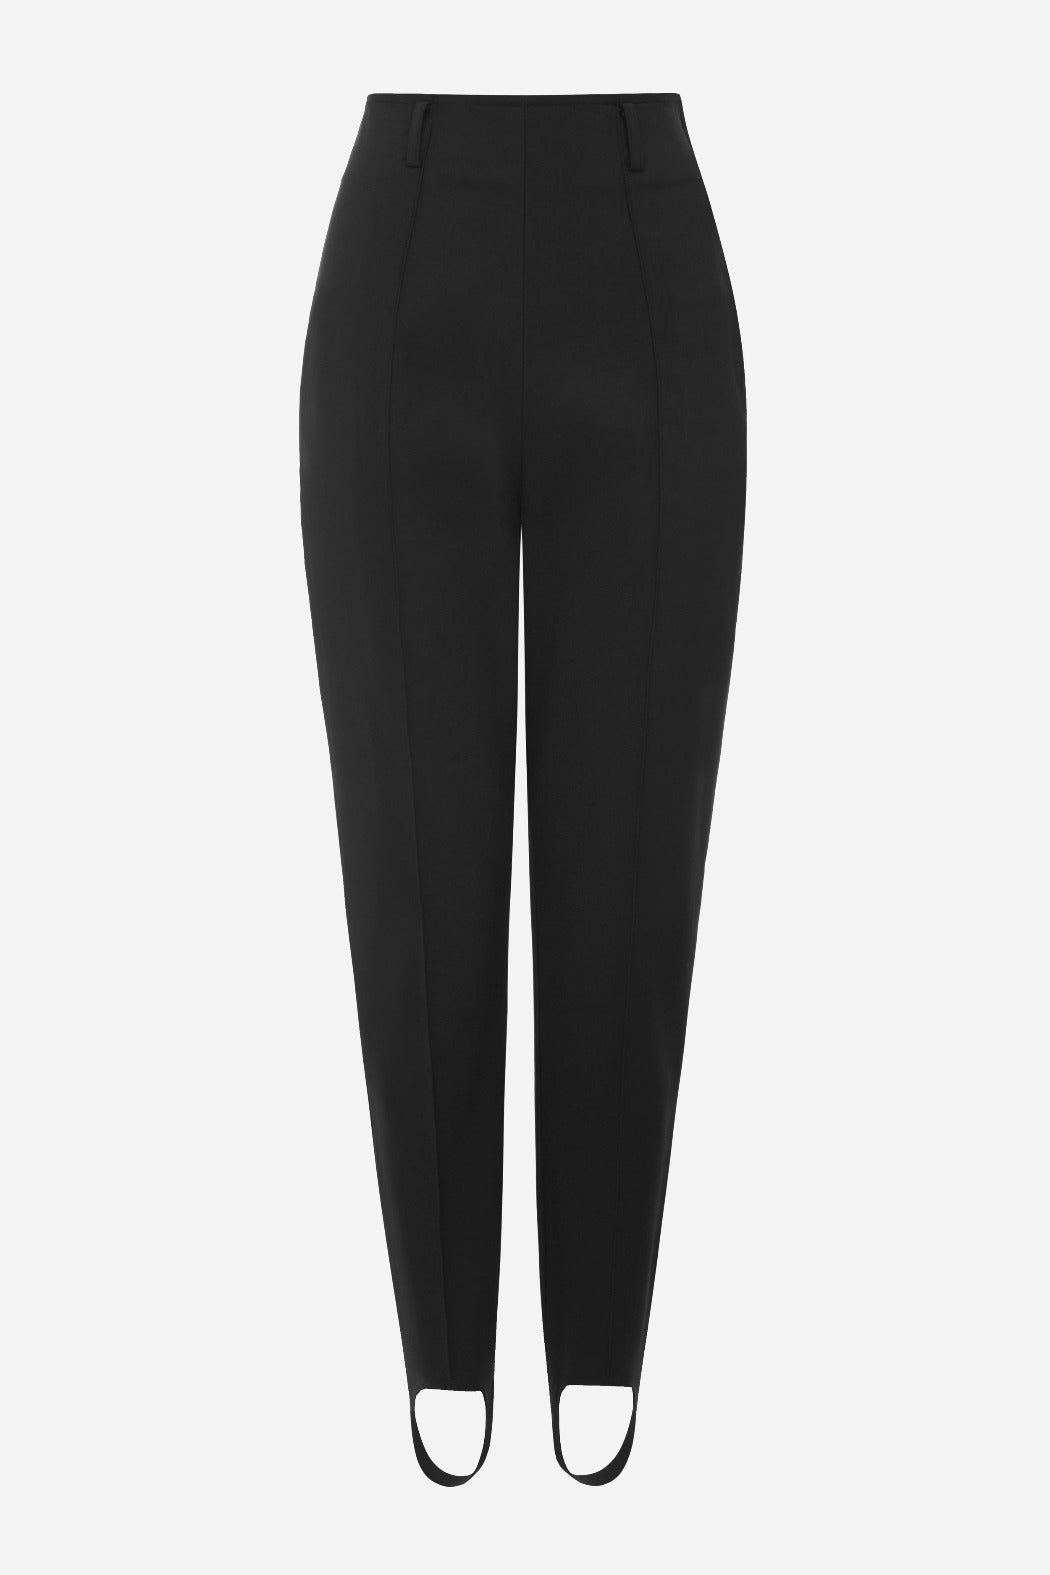 Stirrup Pants Black